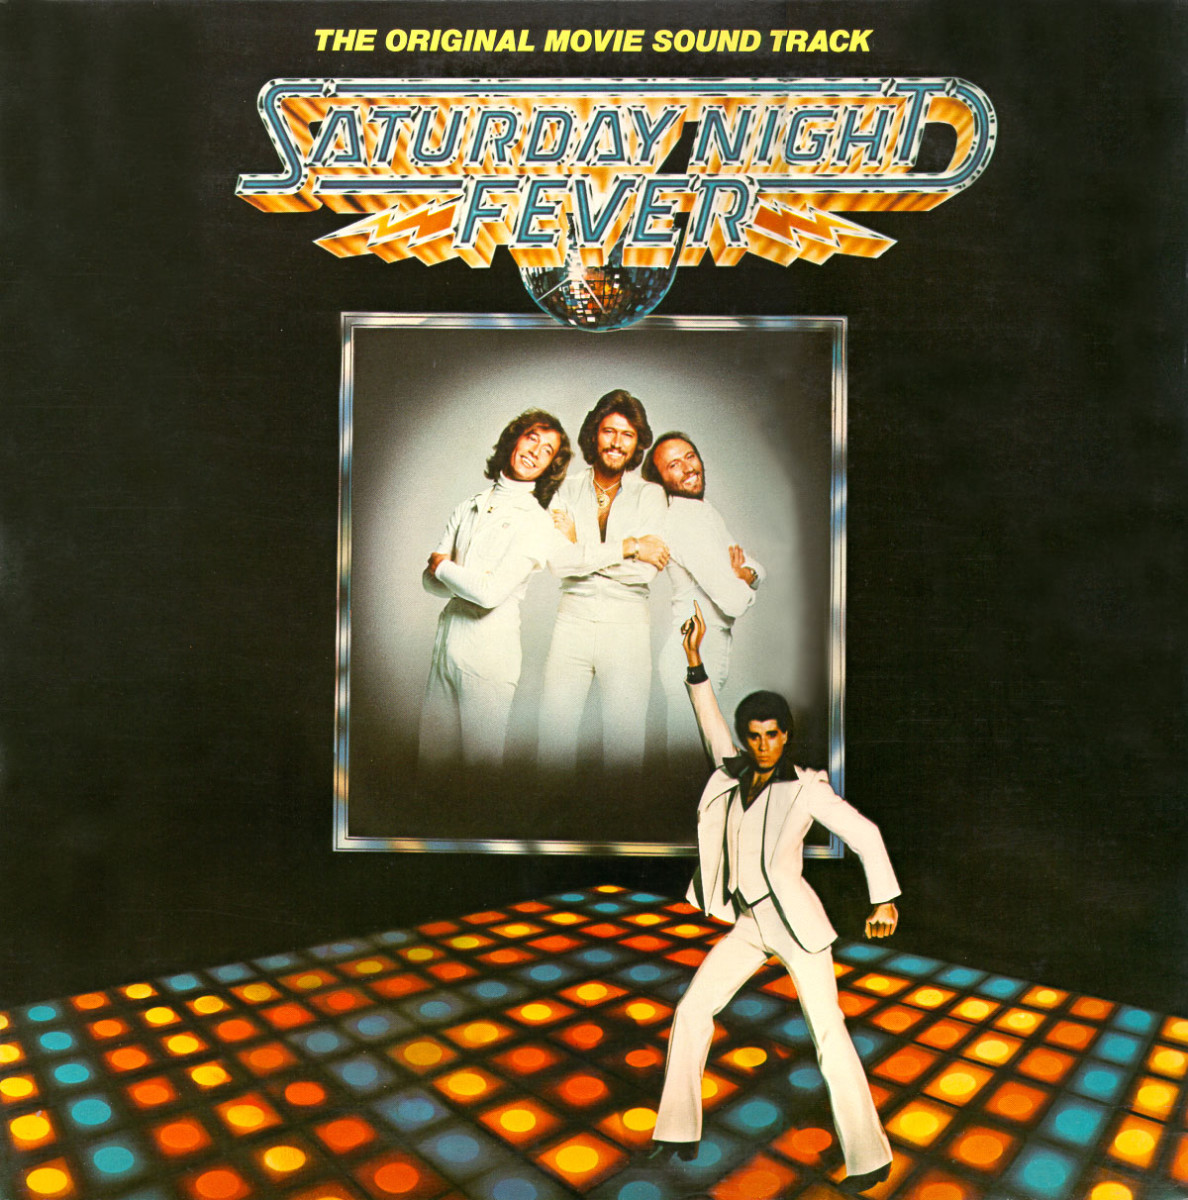 'Saturday Night Fever' Bee Gees Album Cover